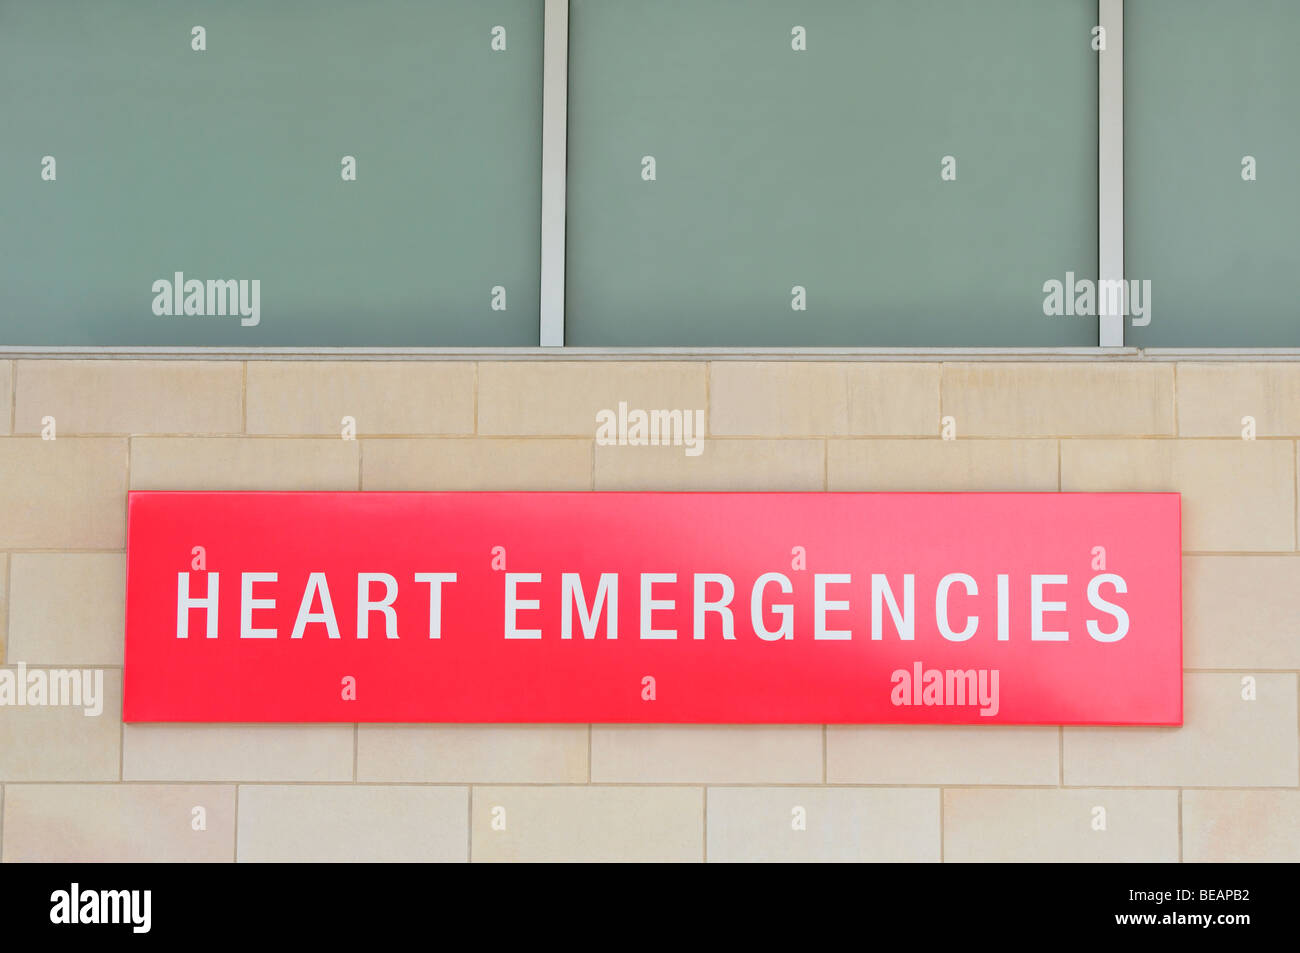 Heart Emergencies sign on a hospital - Stock Image